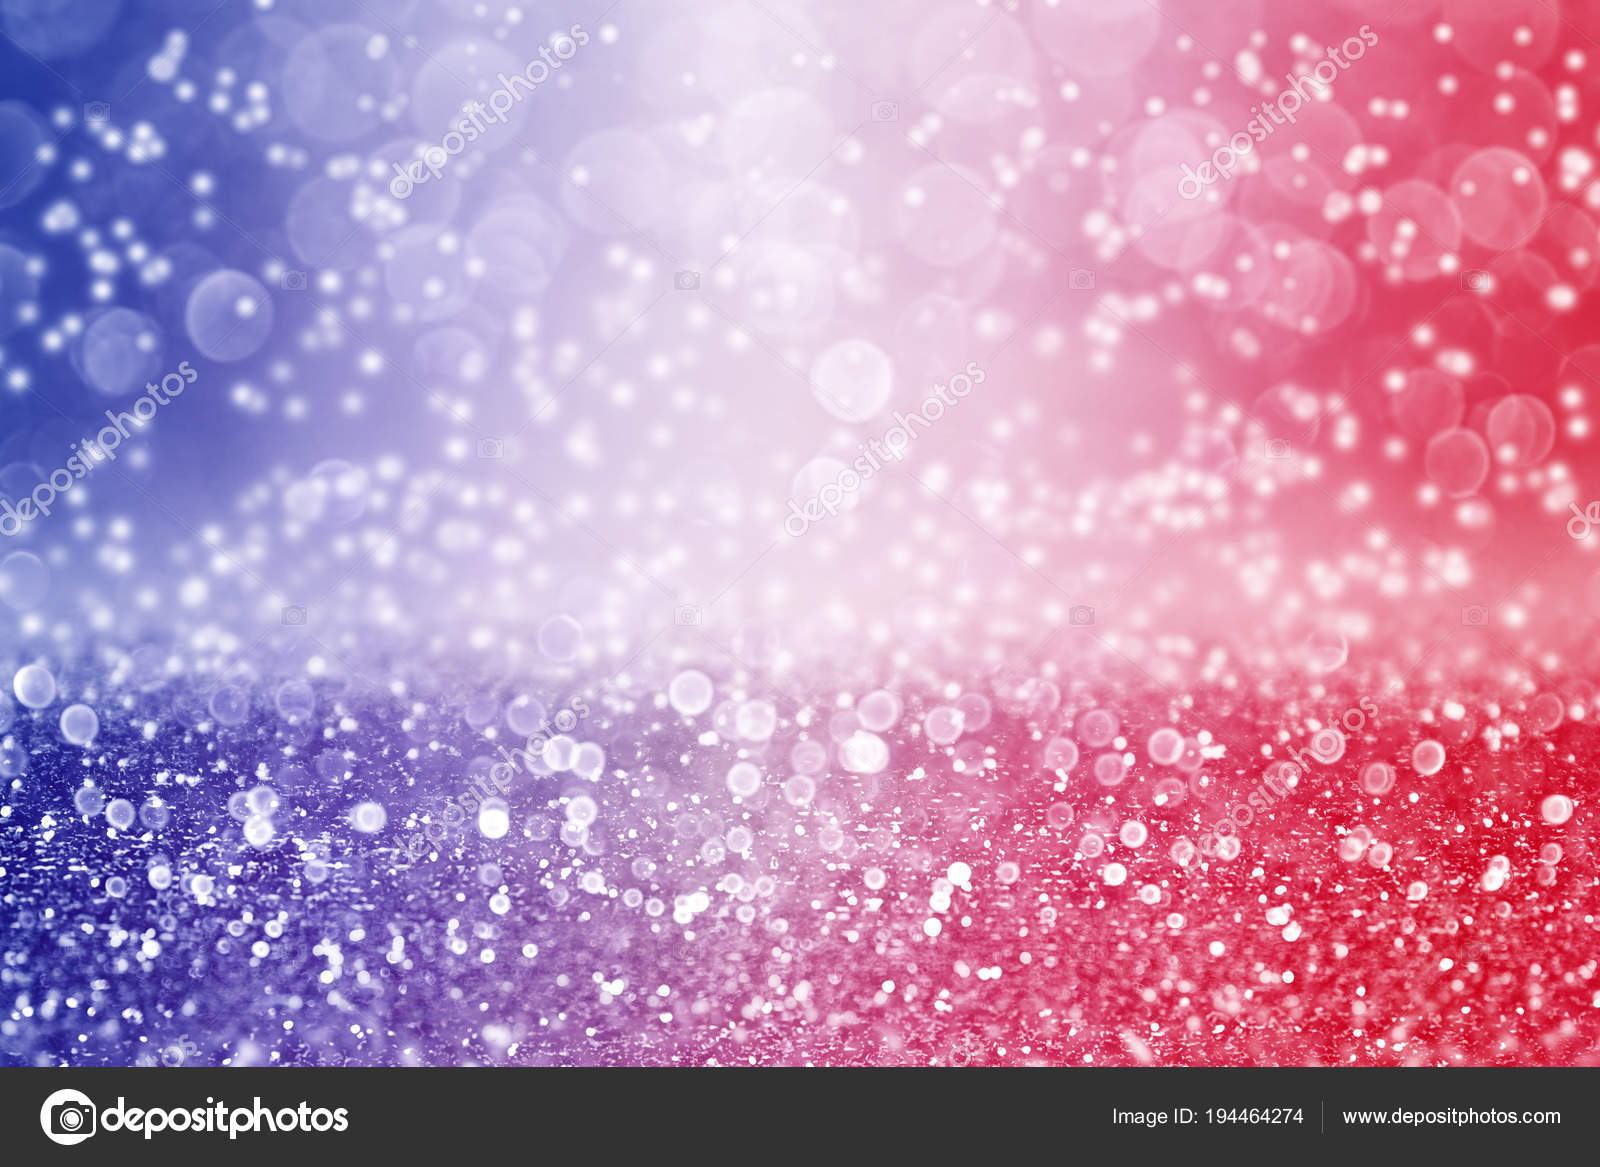 patriotic red white and blue color background sparkle stock photo